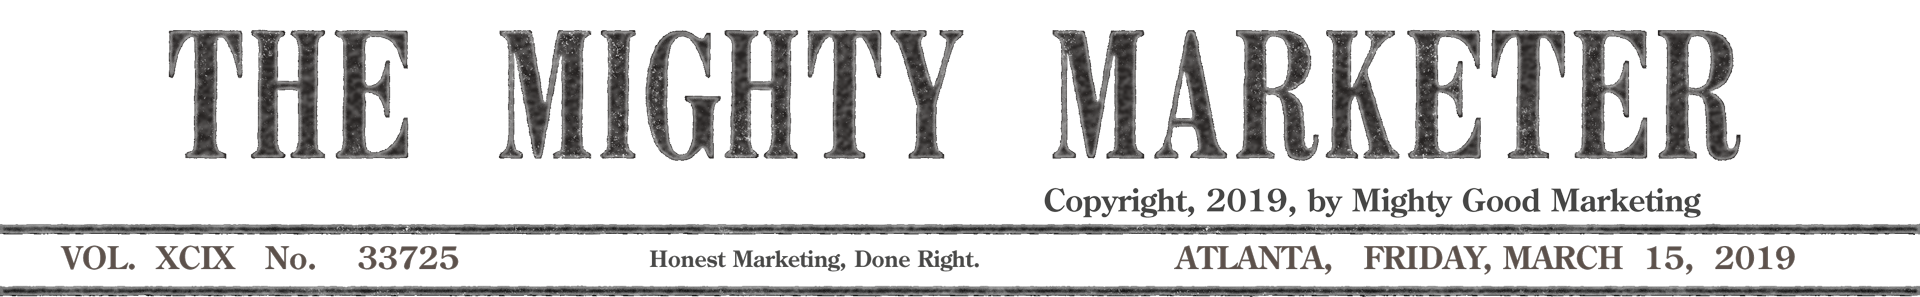 vintage newspaper header